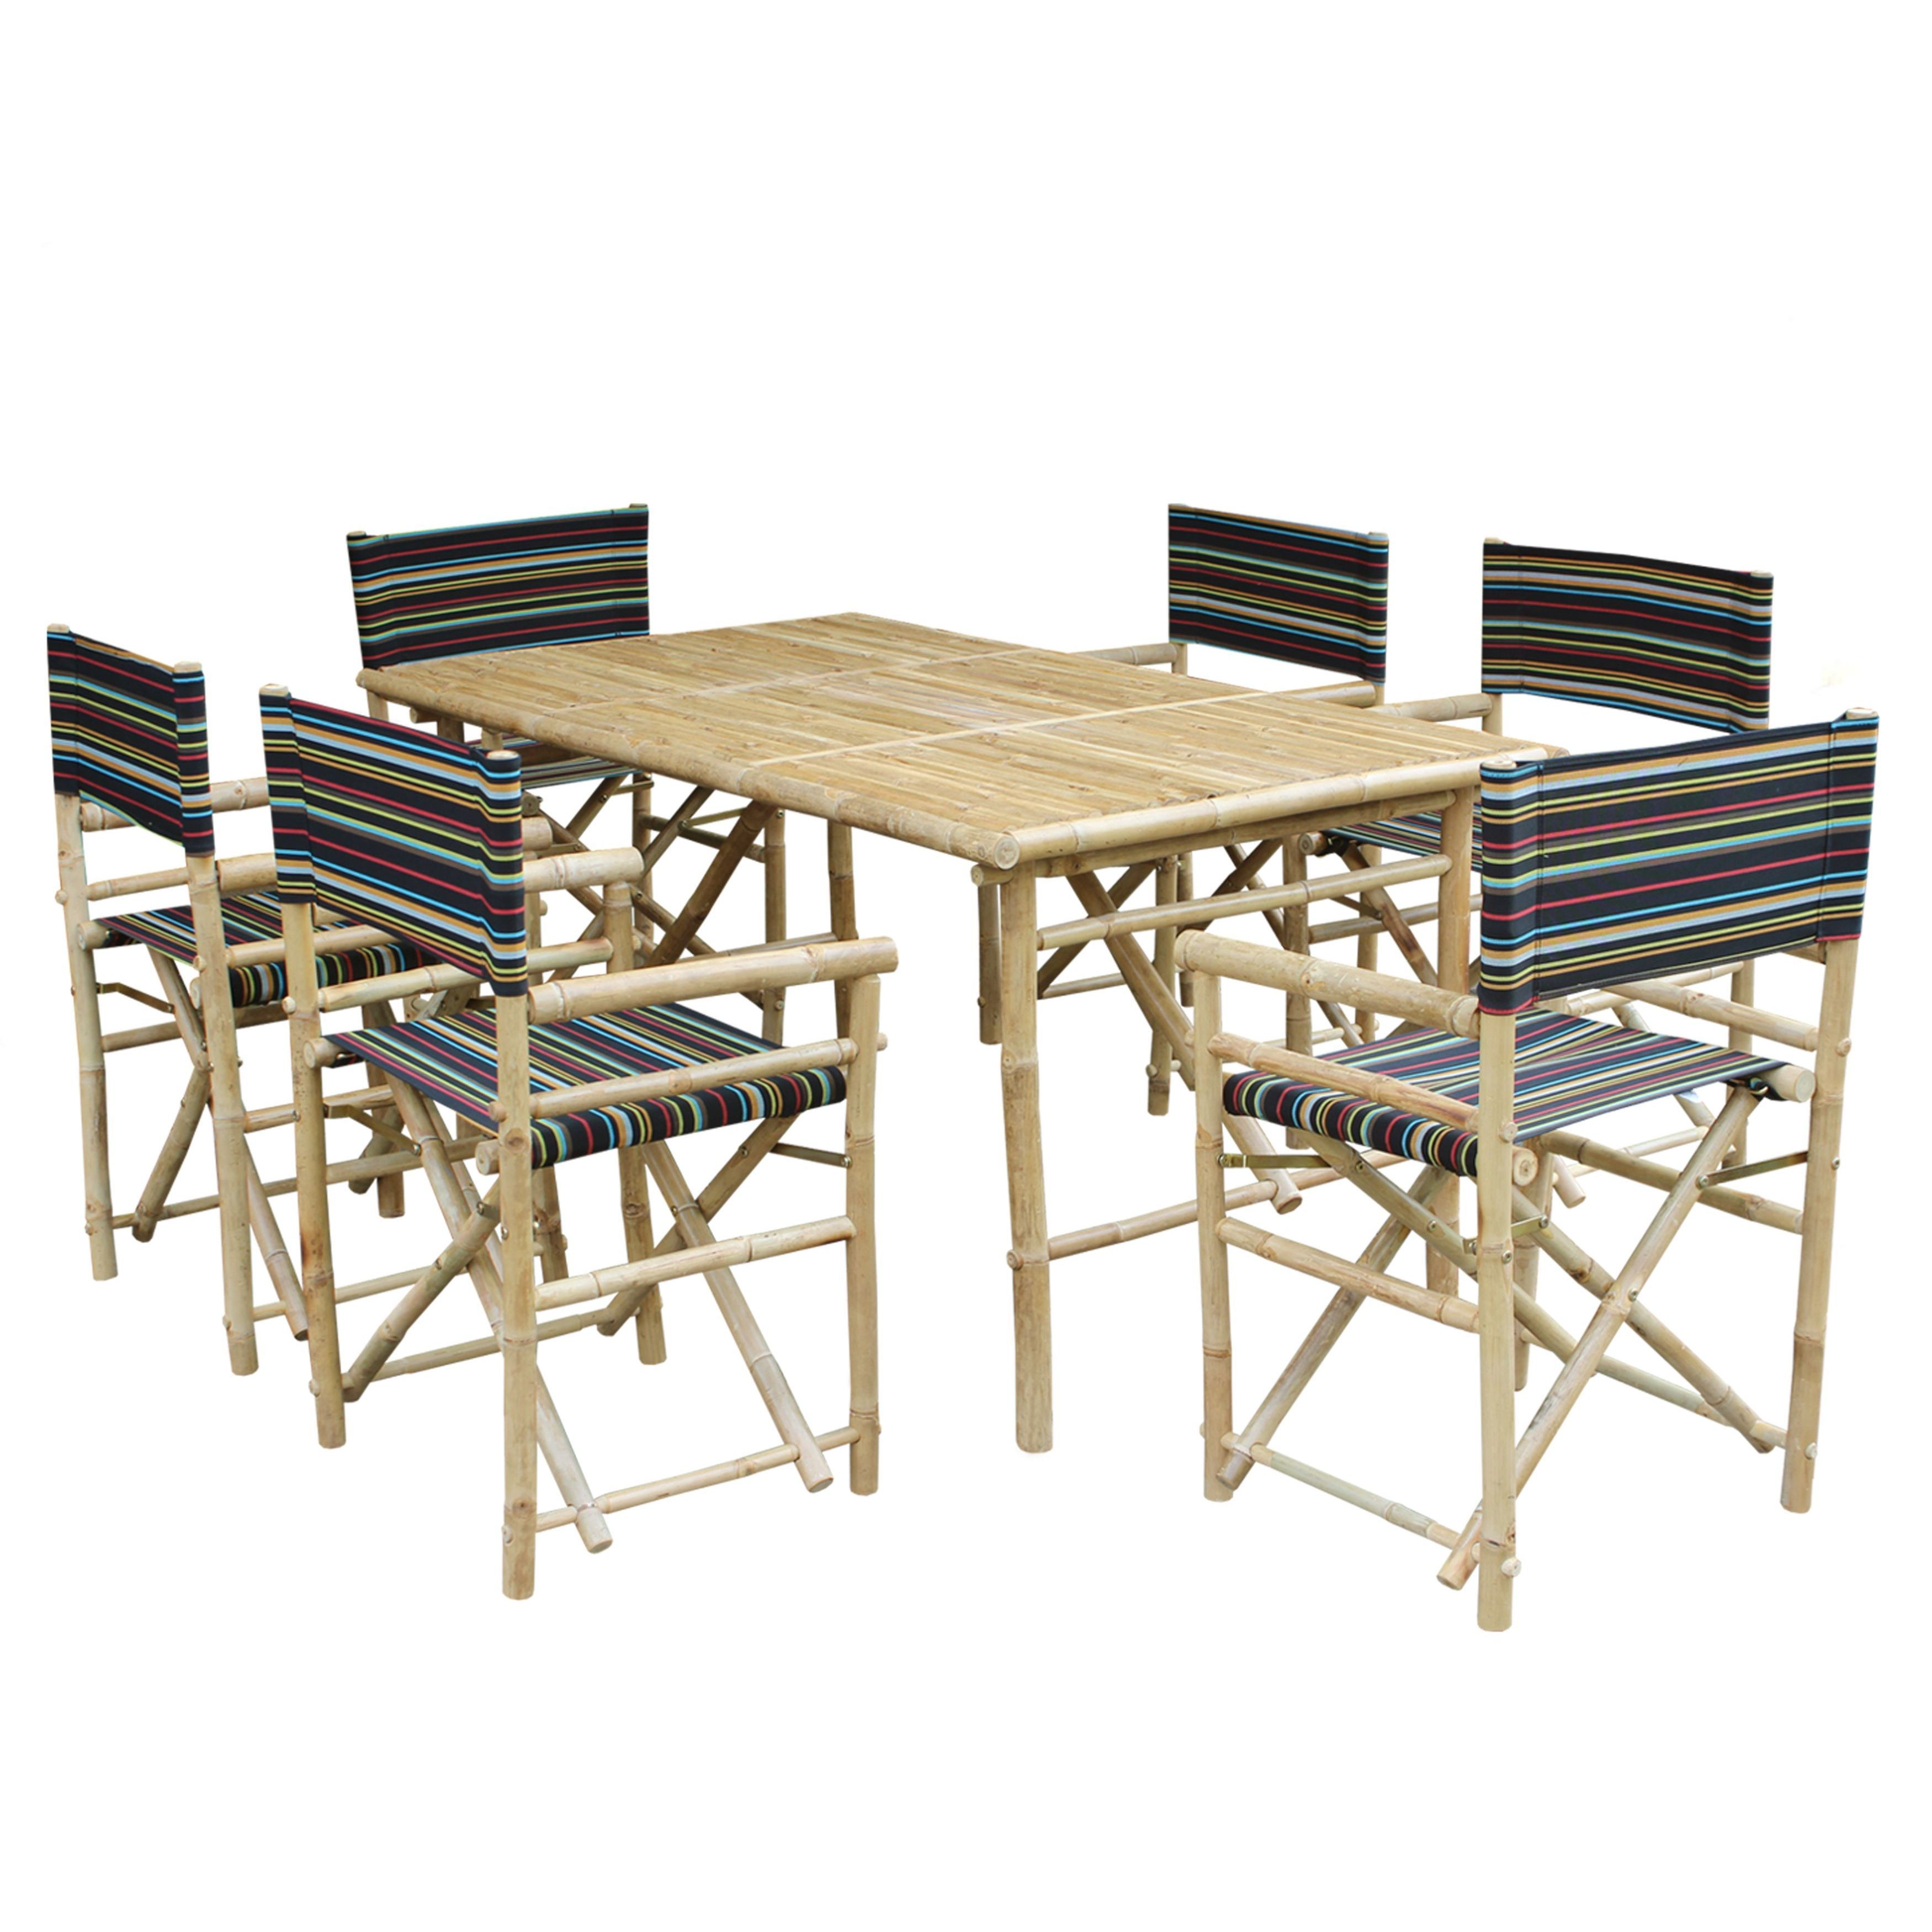 Shop Zew Bamboo Handcrafted 7 Piece Rectangular Patio Set   Free Shipping  Today   Overstock   11908164